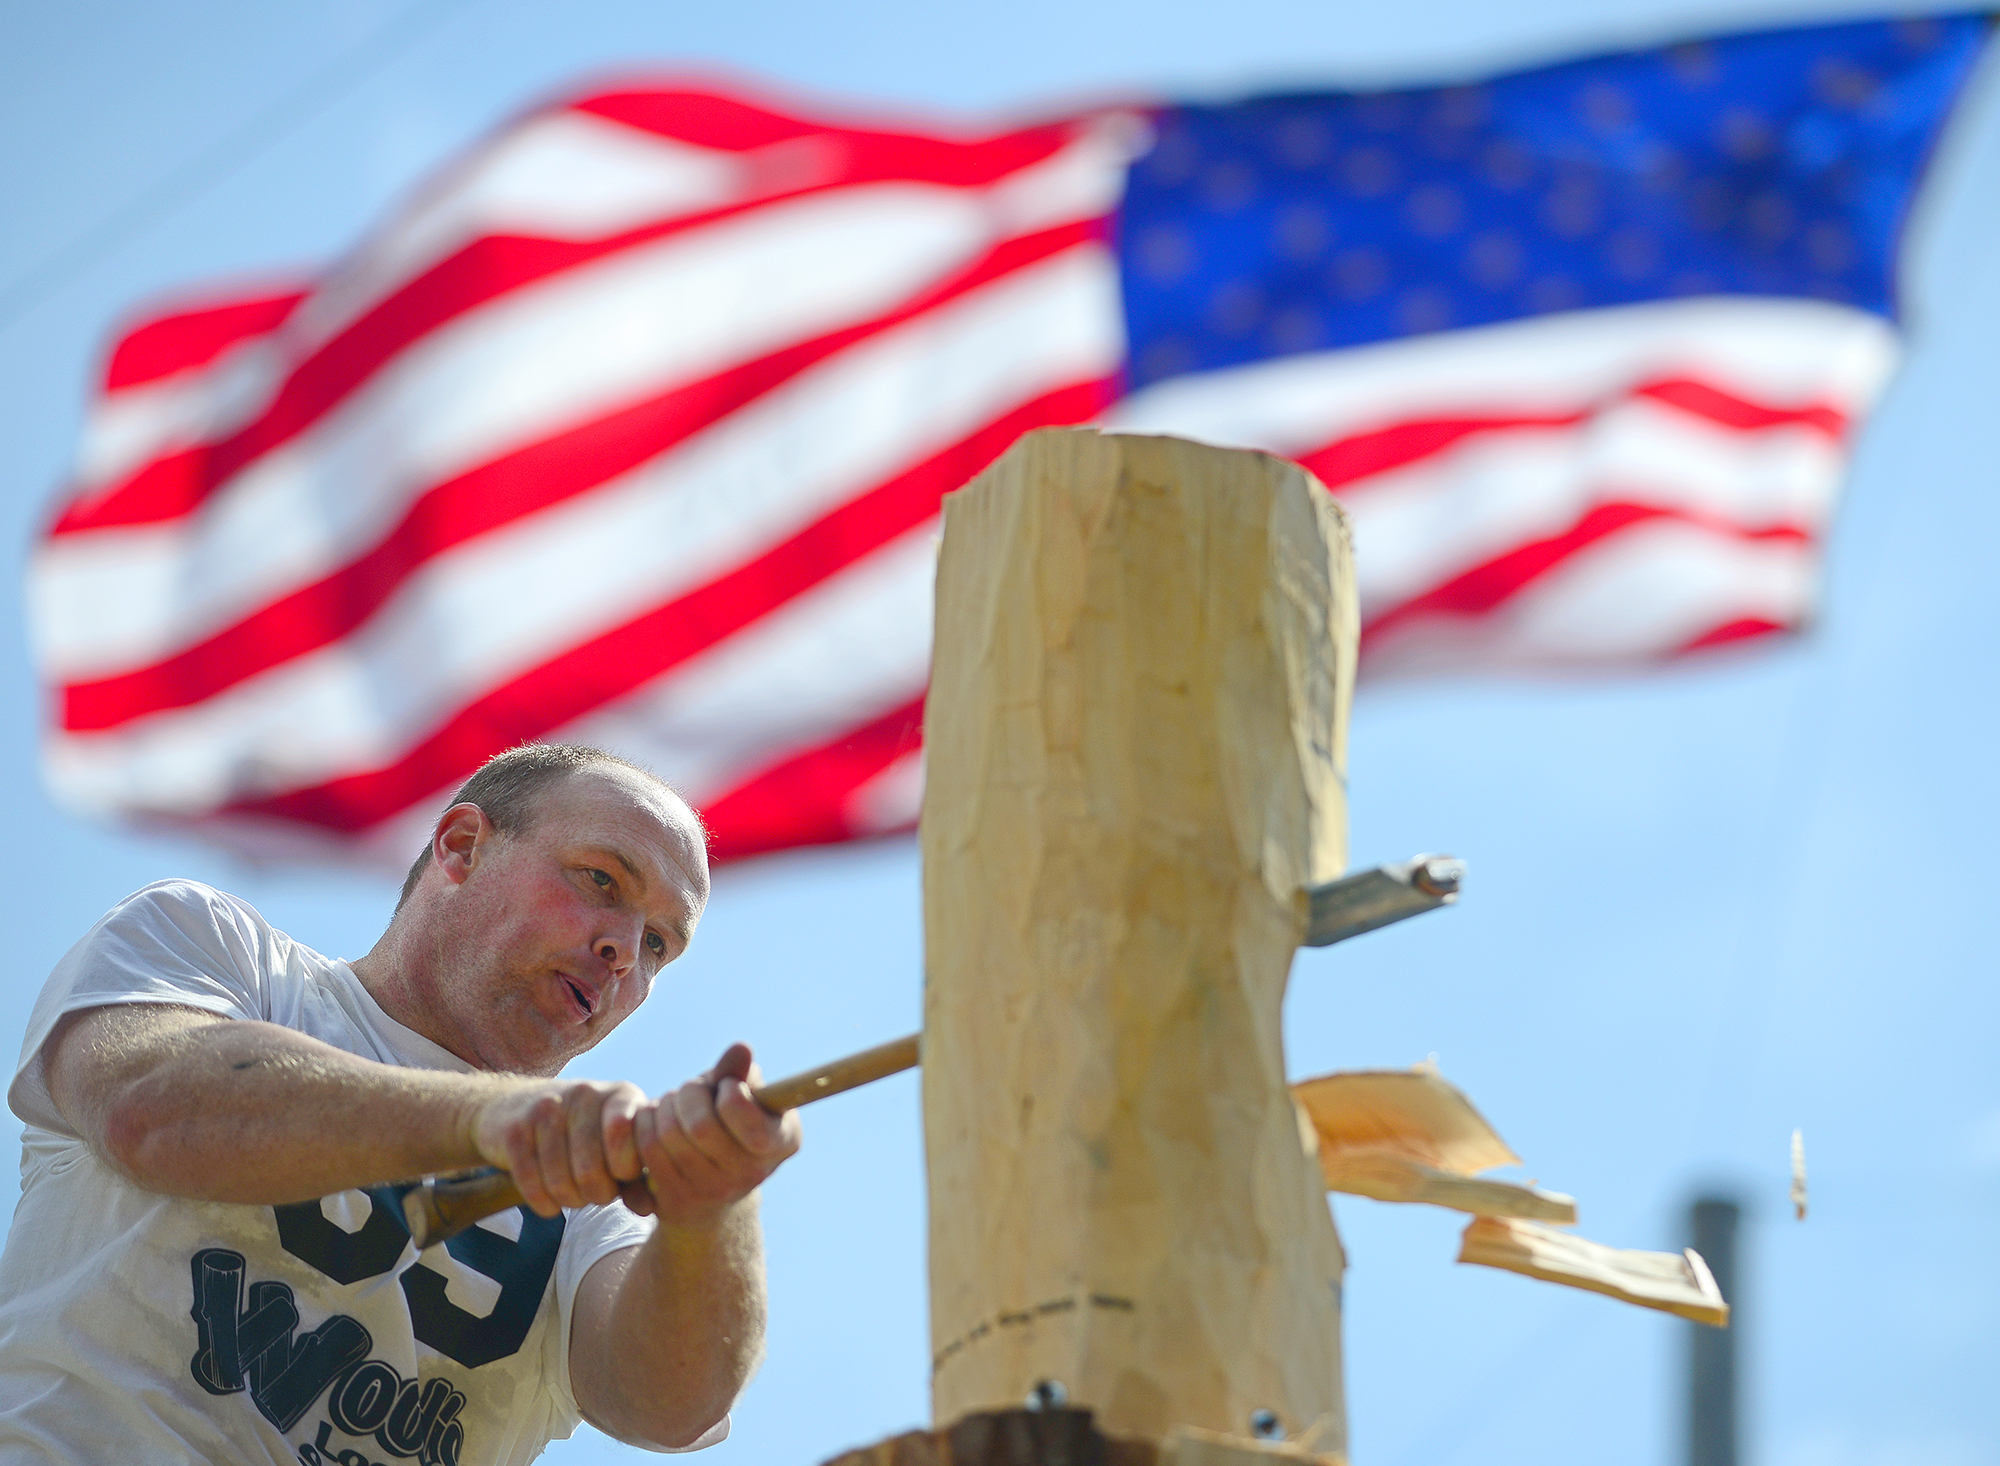 While standing on a plank nearly 7 feet off the ground, Branden Sirguy of Port Angeles chops away at a log in a heat of the springboard chop competition at the 71st Annual Loggers Jubilee in Morton, Wash. on Saturday, Aug. 10, 2013. Dozens of competitive loggers from across the Northwest traveled to Morton this weekend to battle for the title Bull of the Woods. Loggers competed in up to 13 events, including axe throwing, speed climbing, and birling.